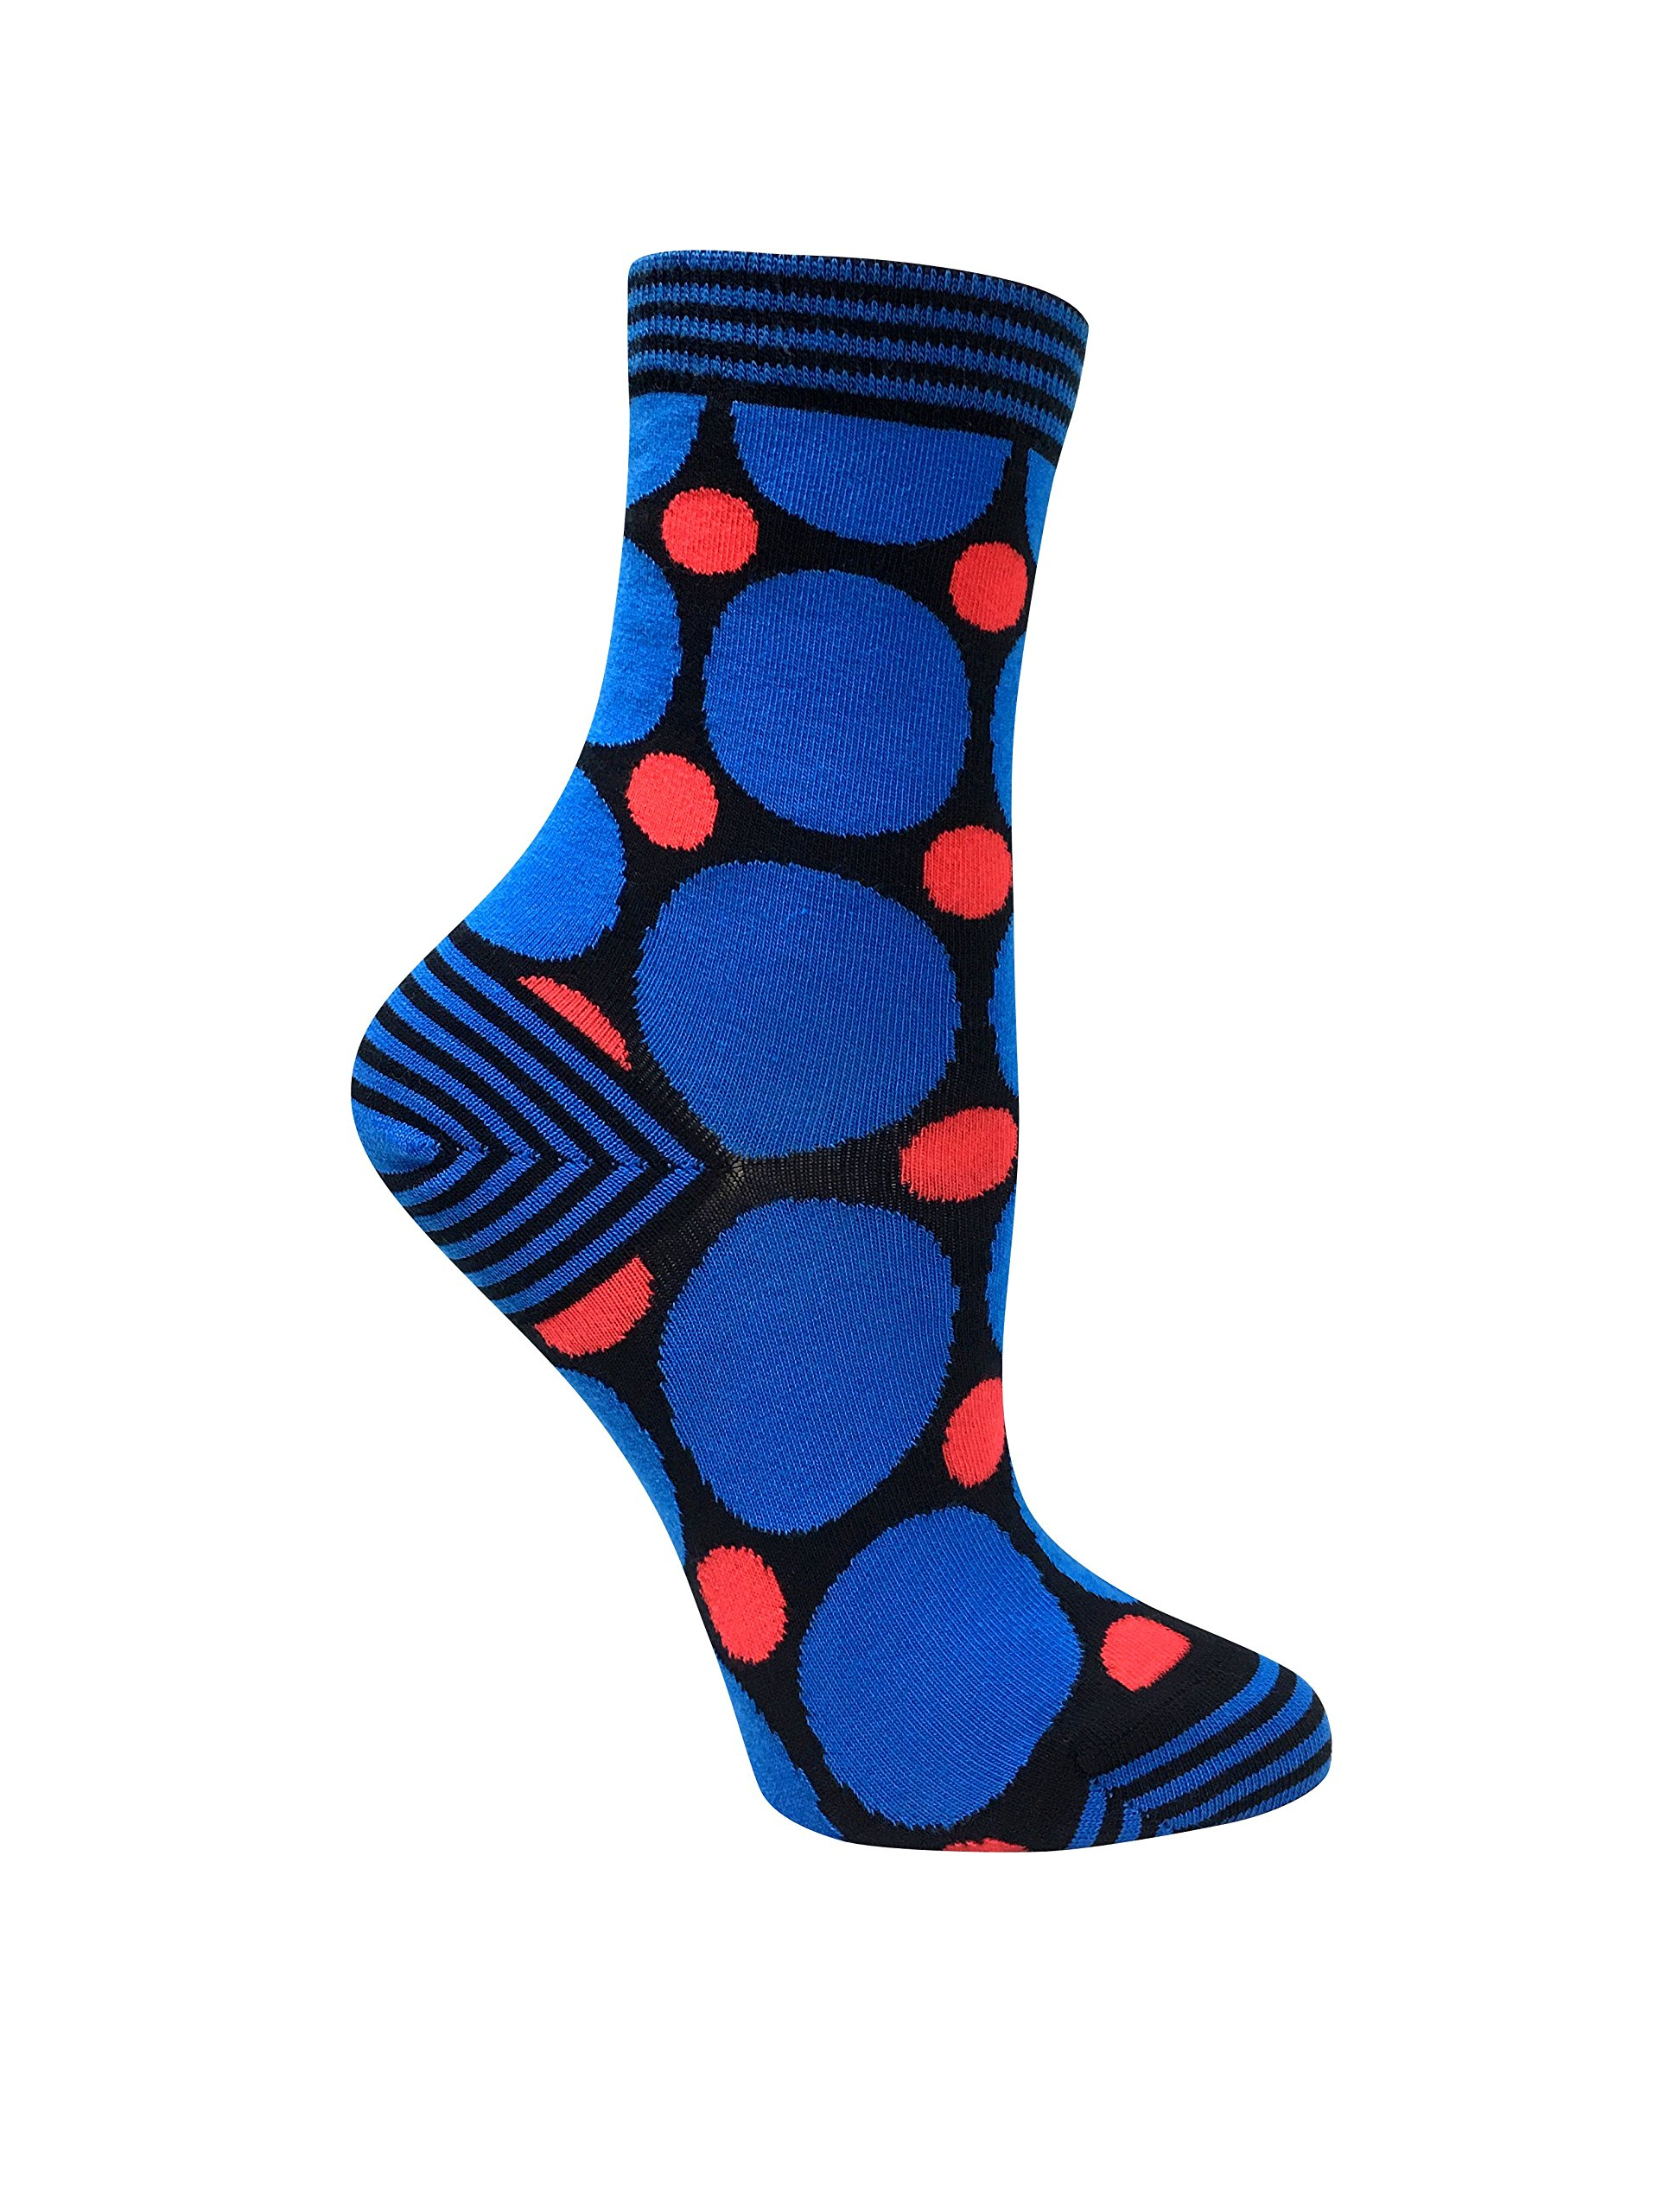 Premium organic cotton blue and red polka dots women's socks with seamless toes. (Blue)